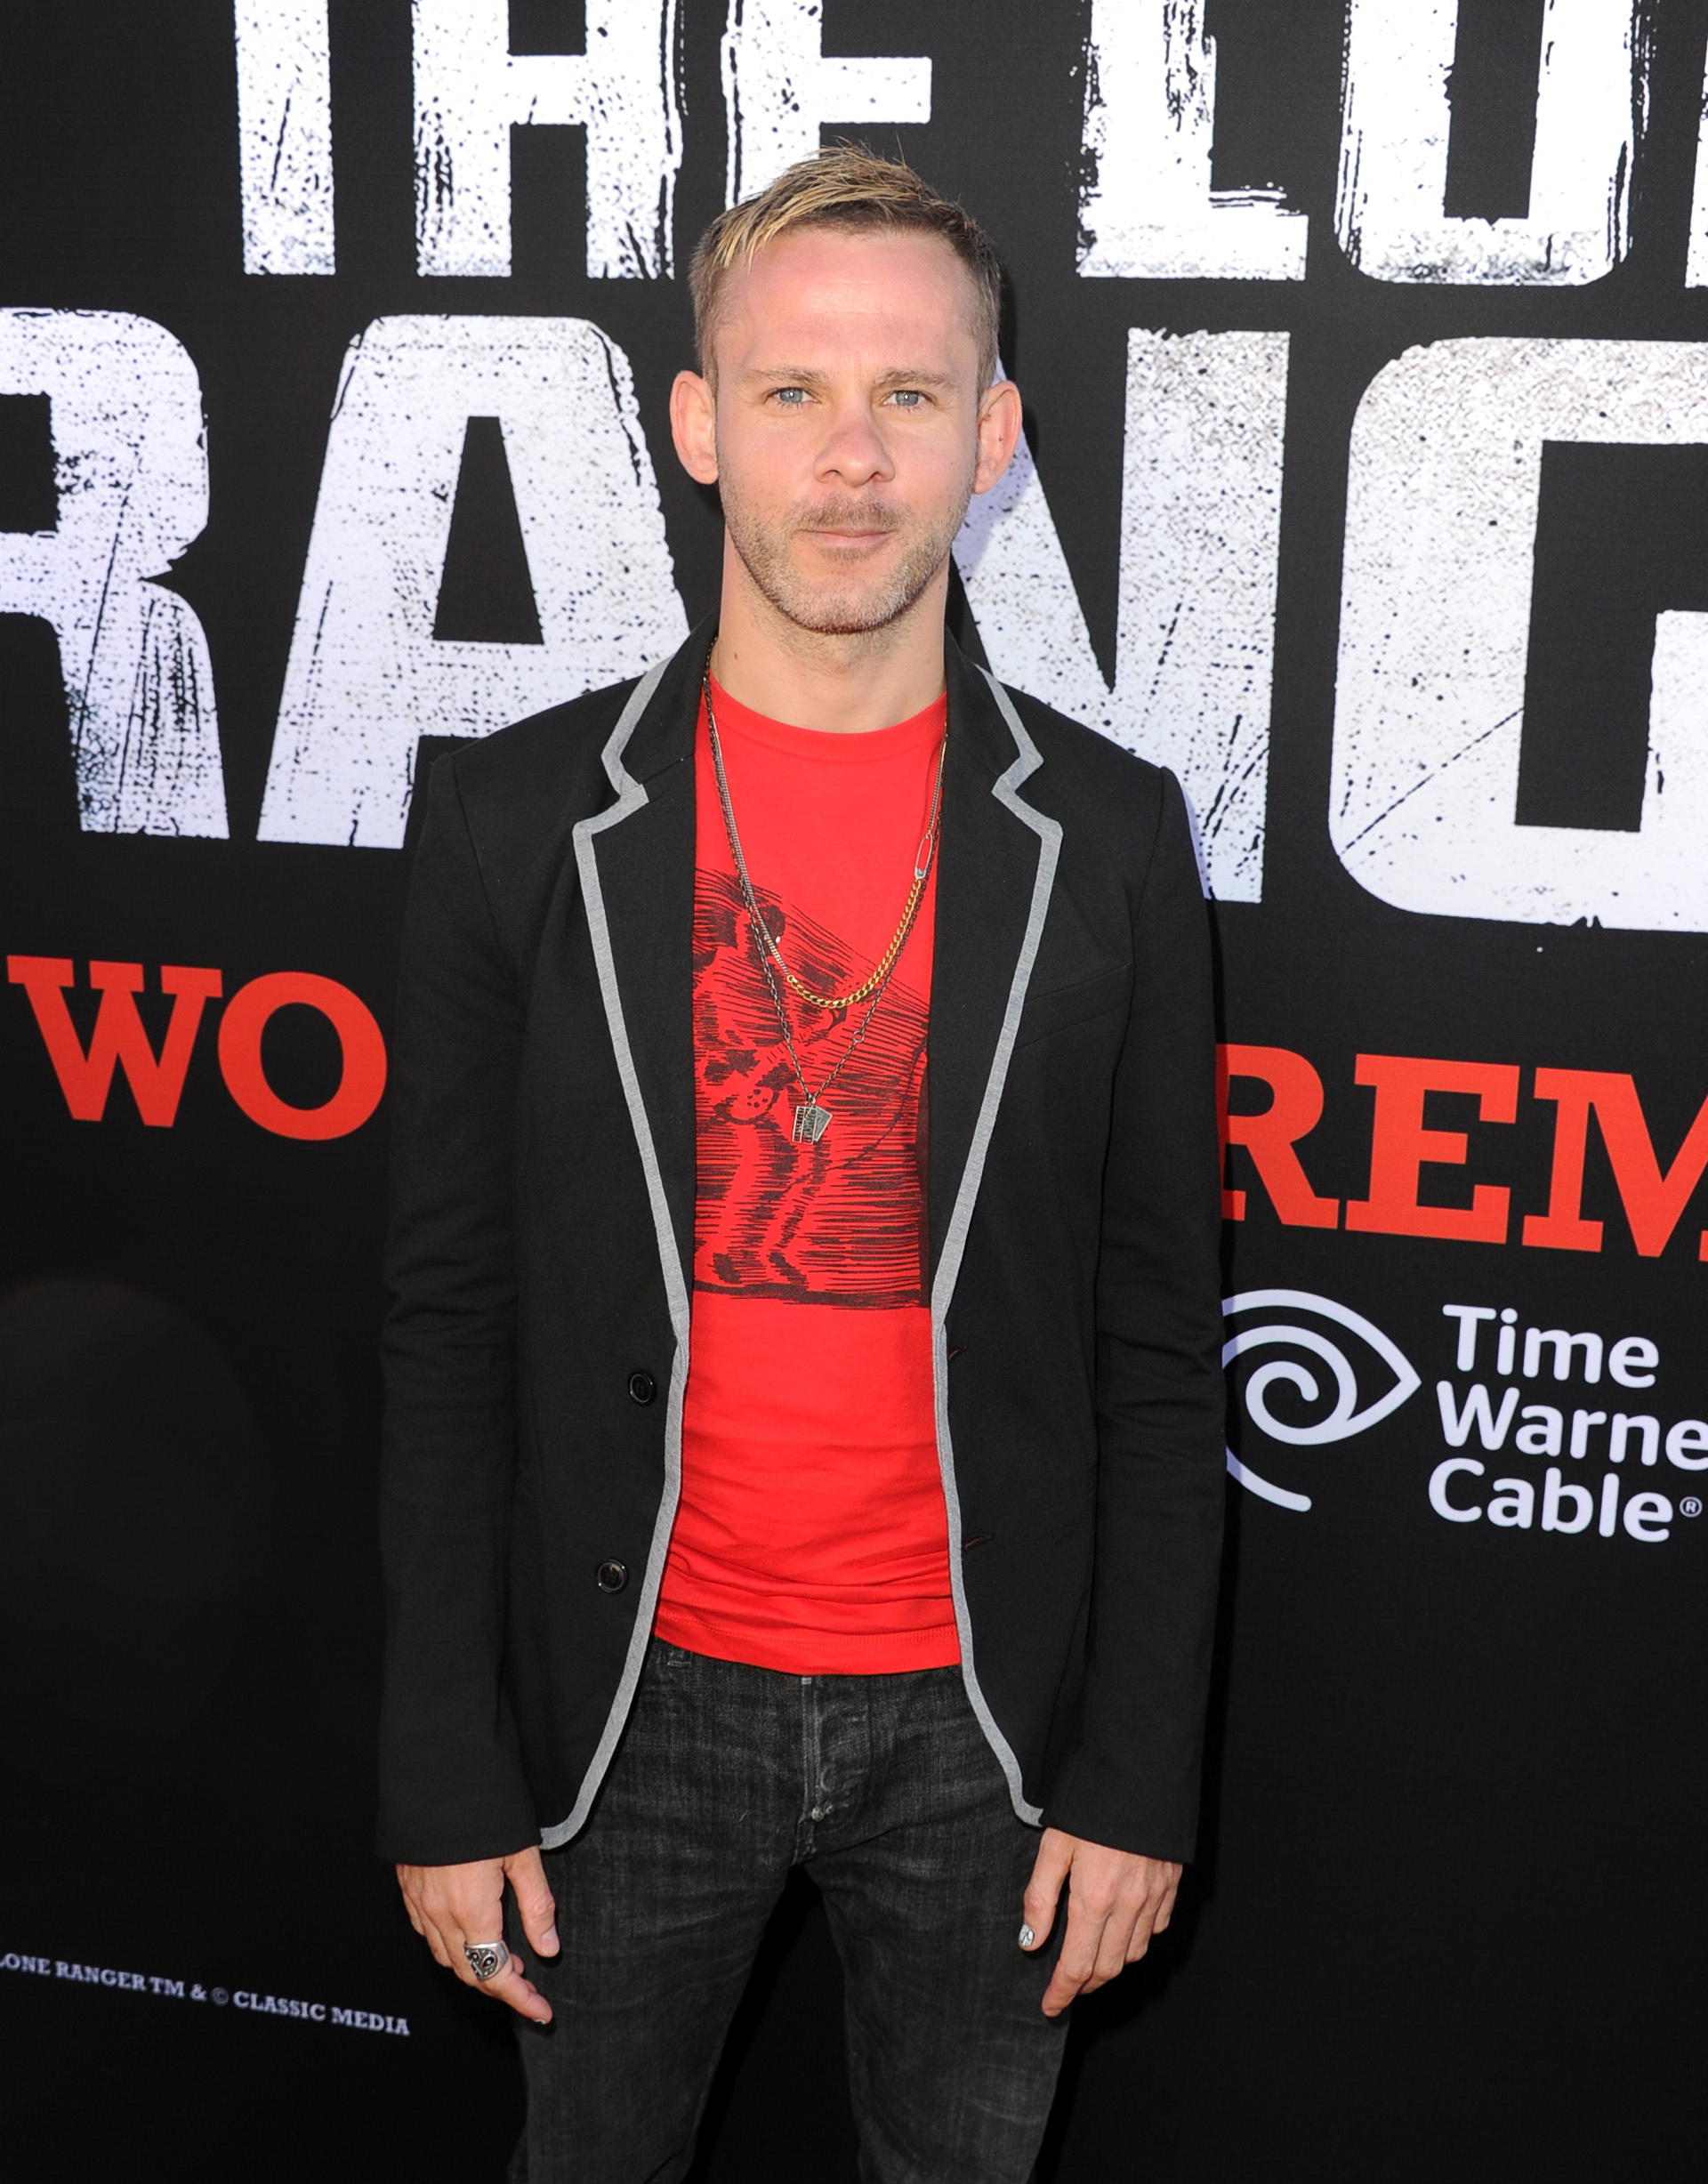 Dominic Monaghan pestering JJ Abrams for Star Wars Episode 7 role